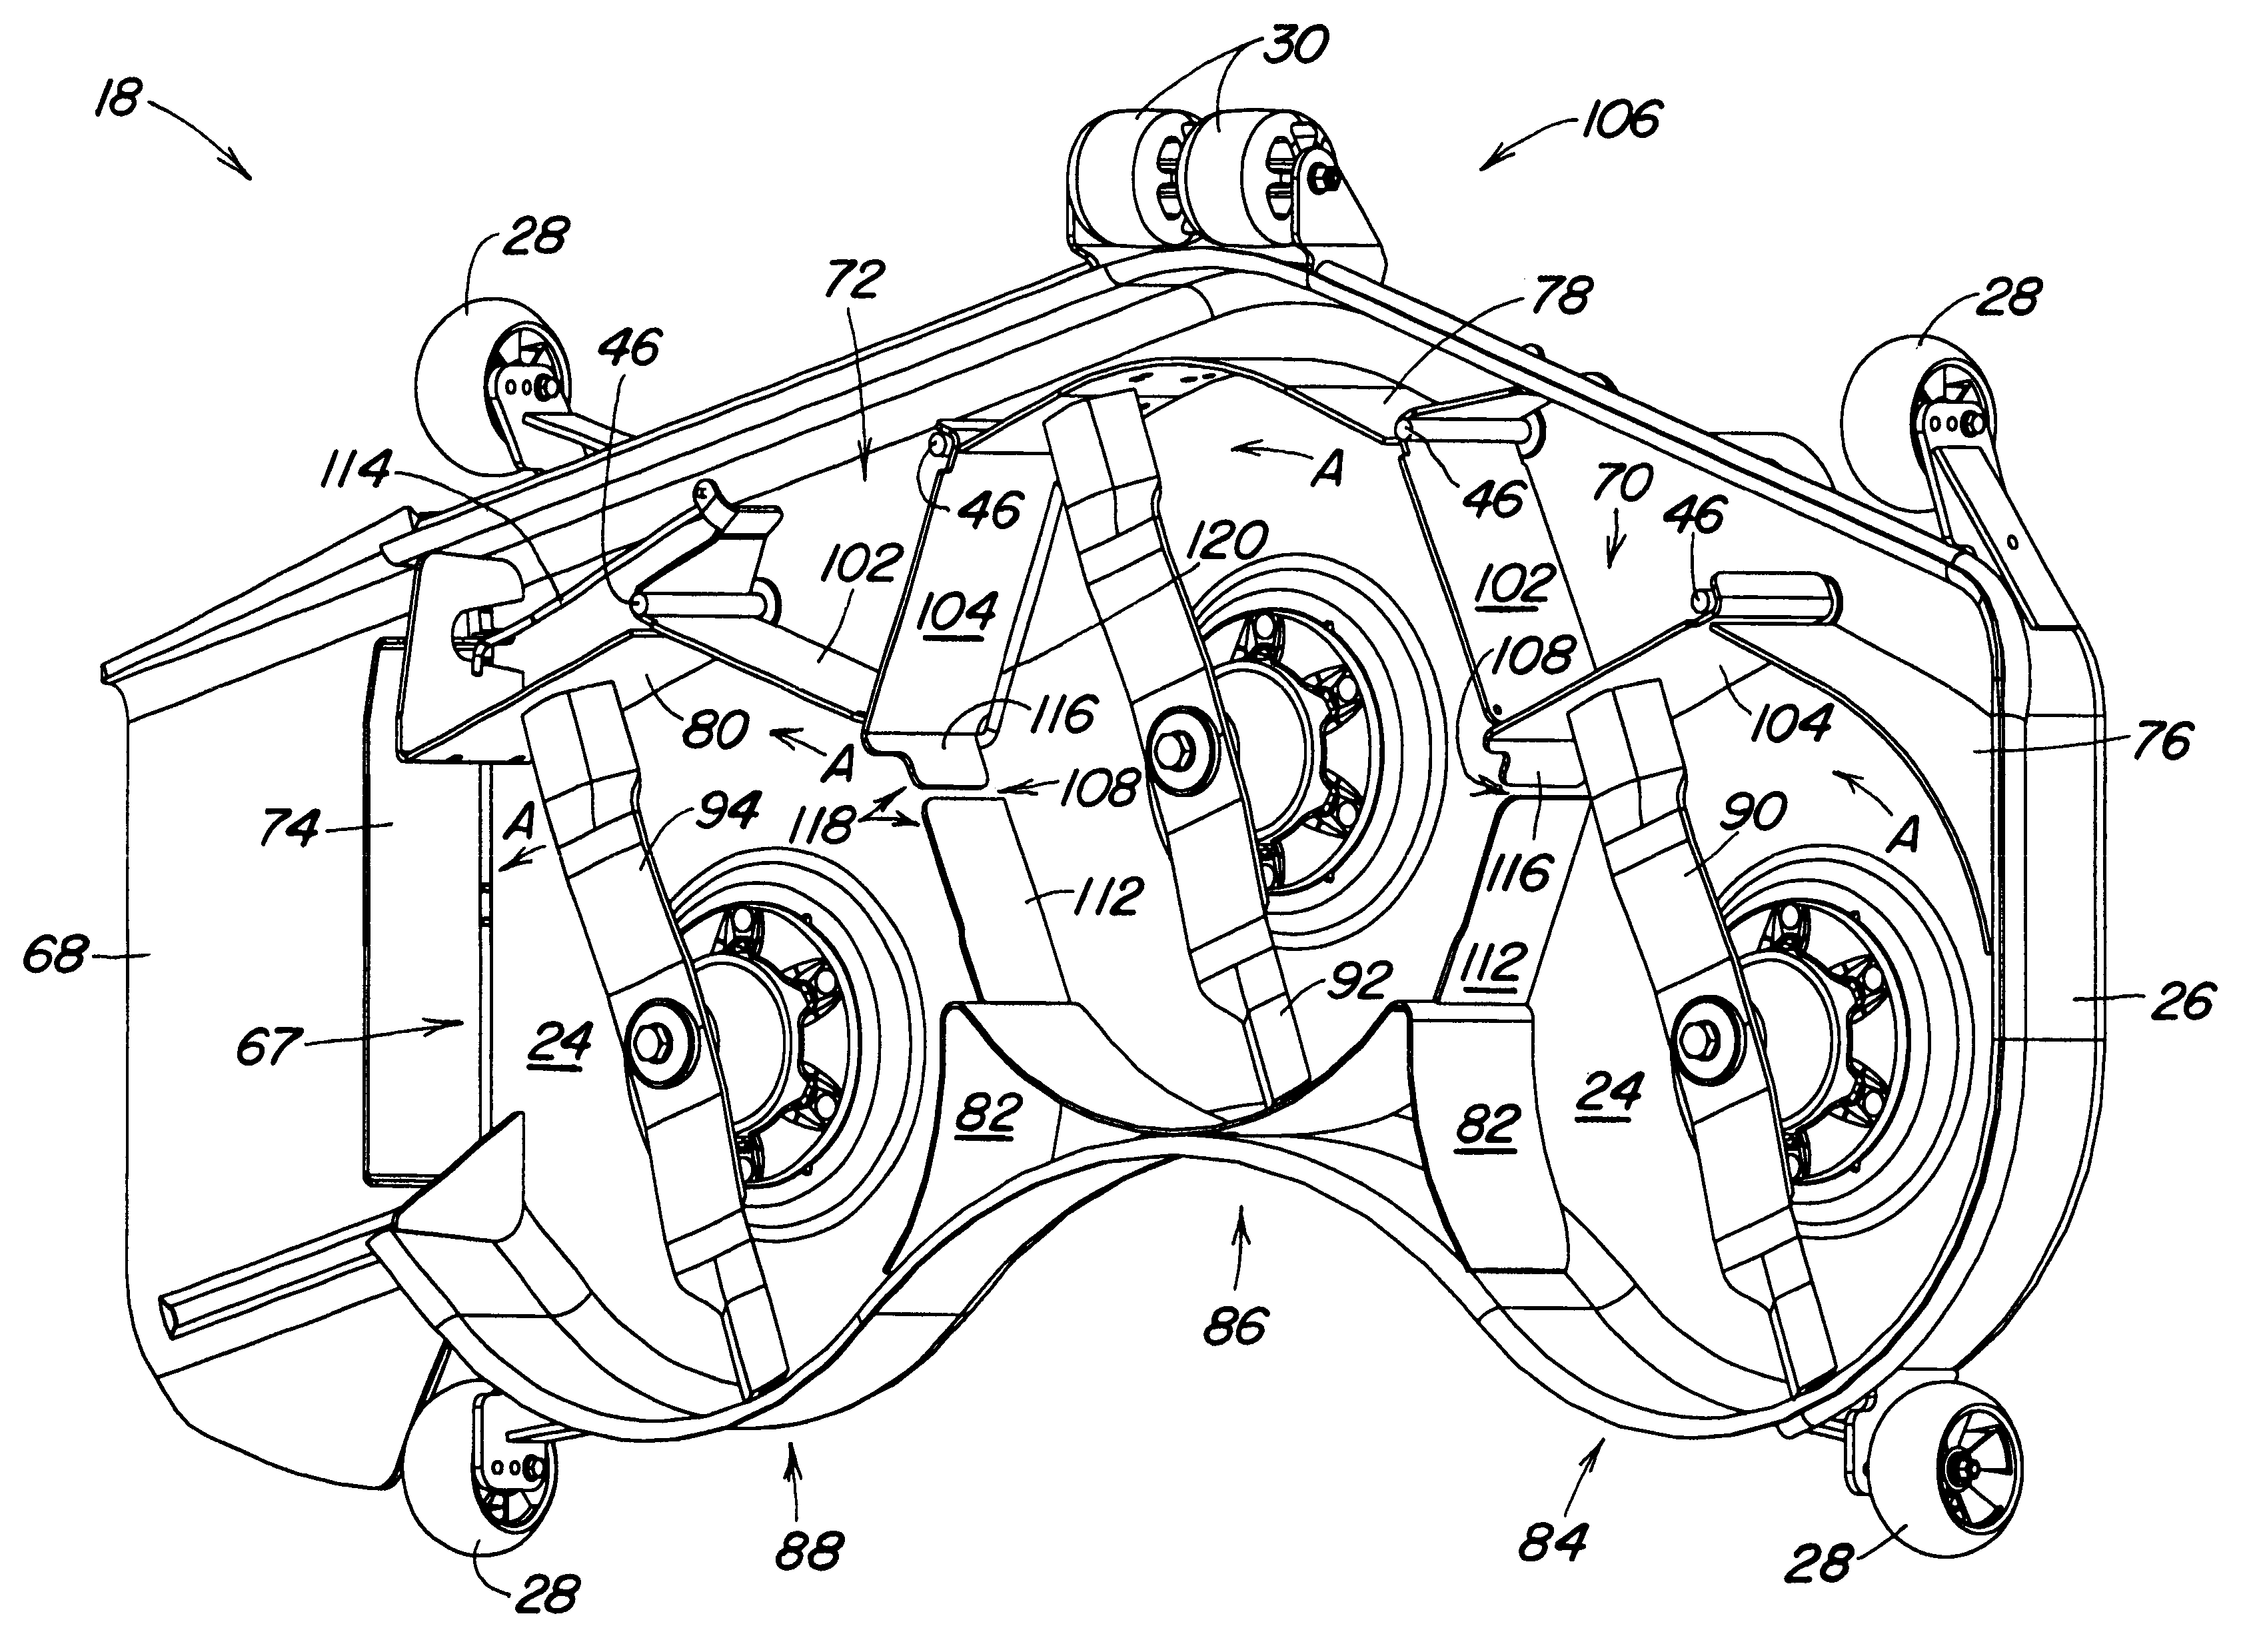 US6609358B1 - Mower having a mower deck adapted for selective